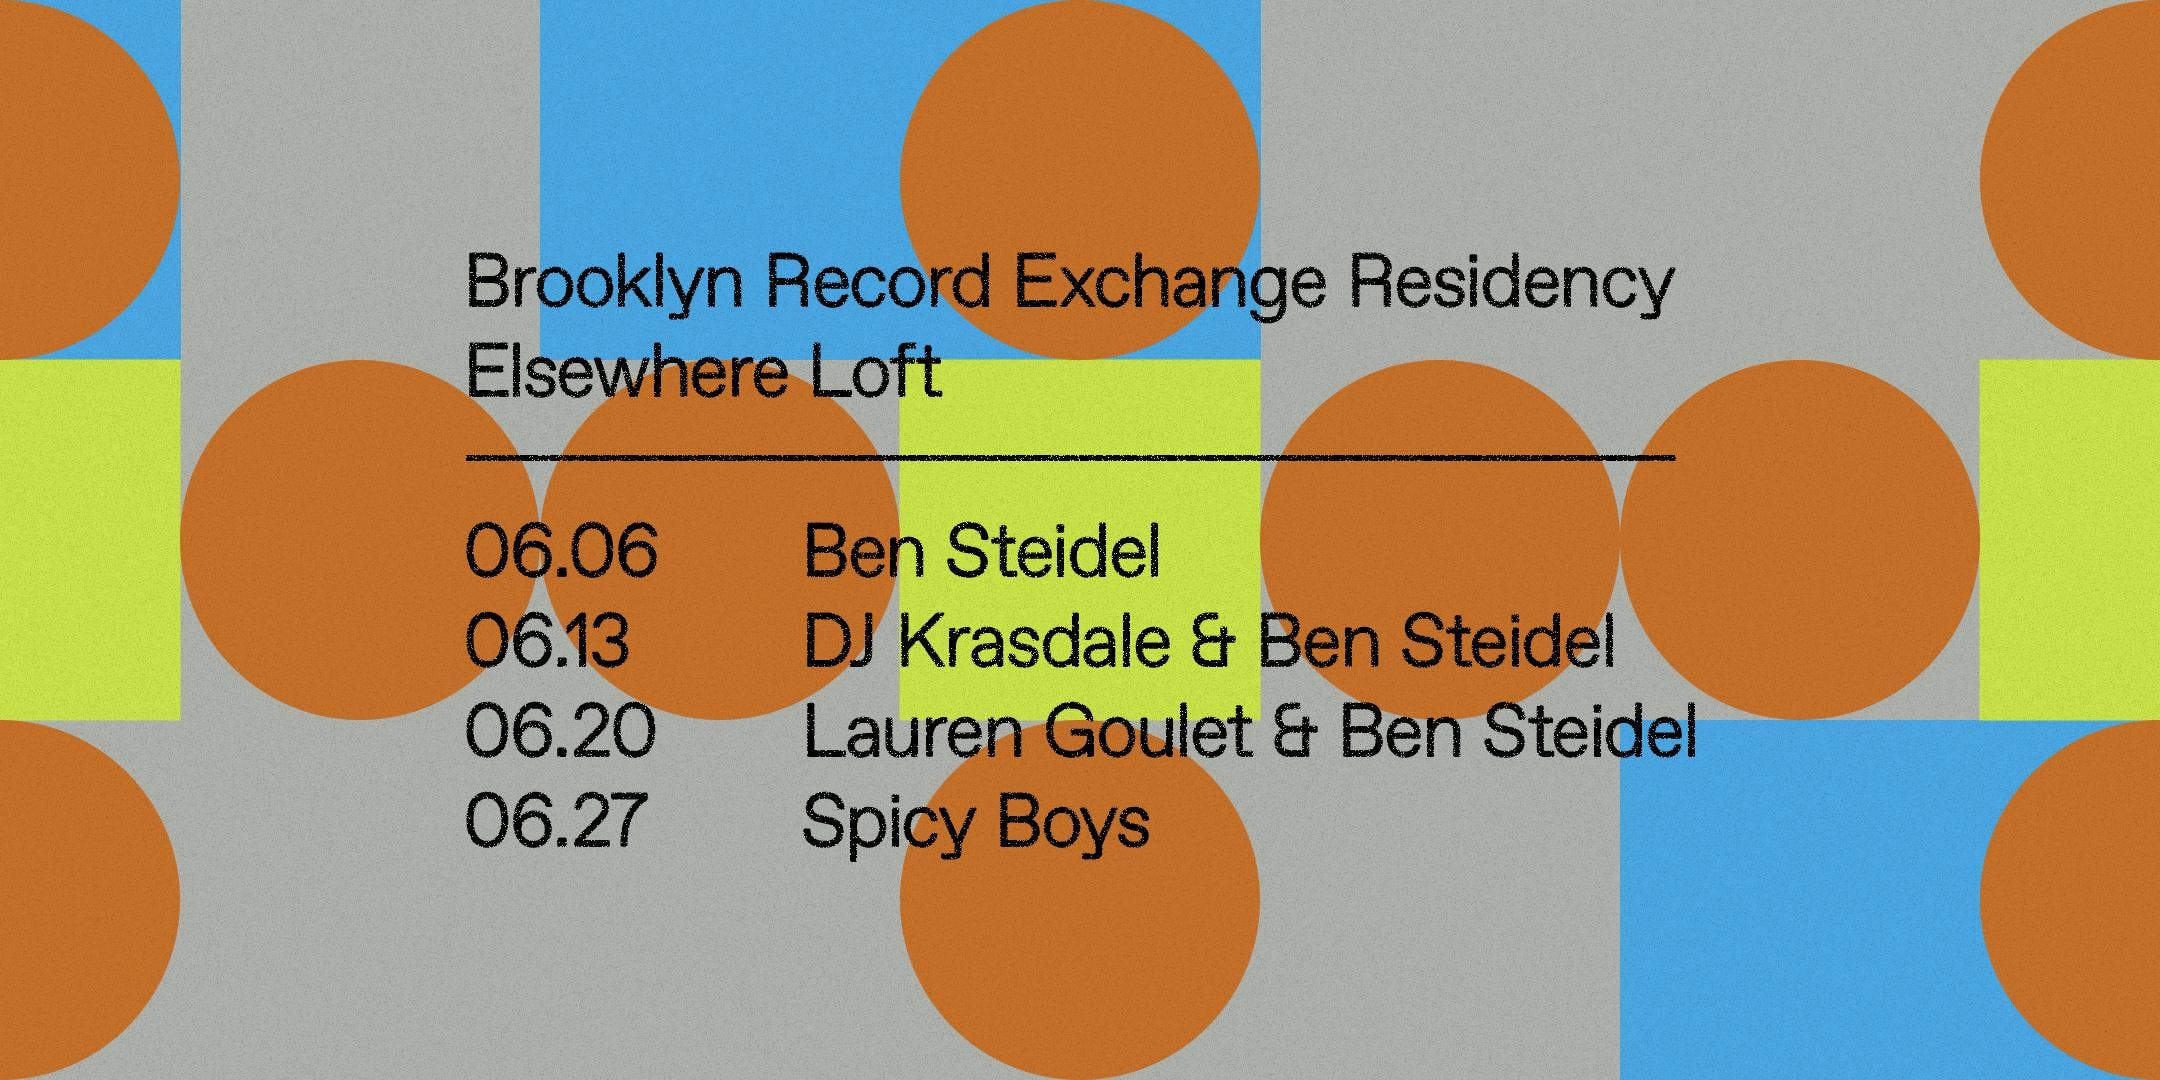 Brooklyn Record Exchange Residency w/ Lauren Goulet & Ben Steidel